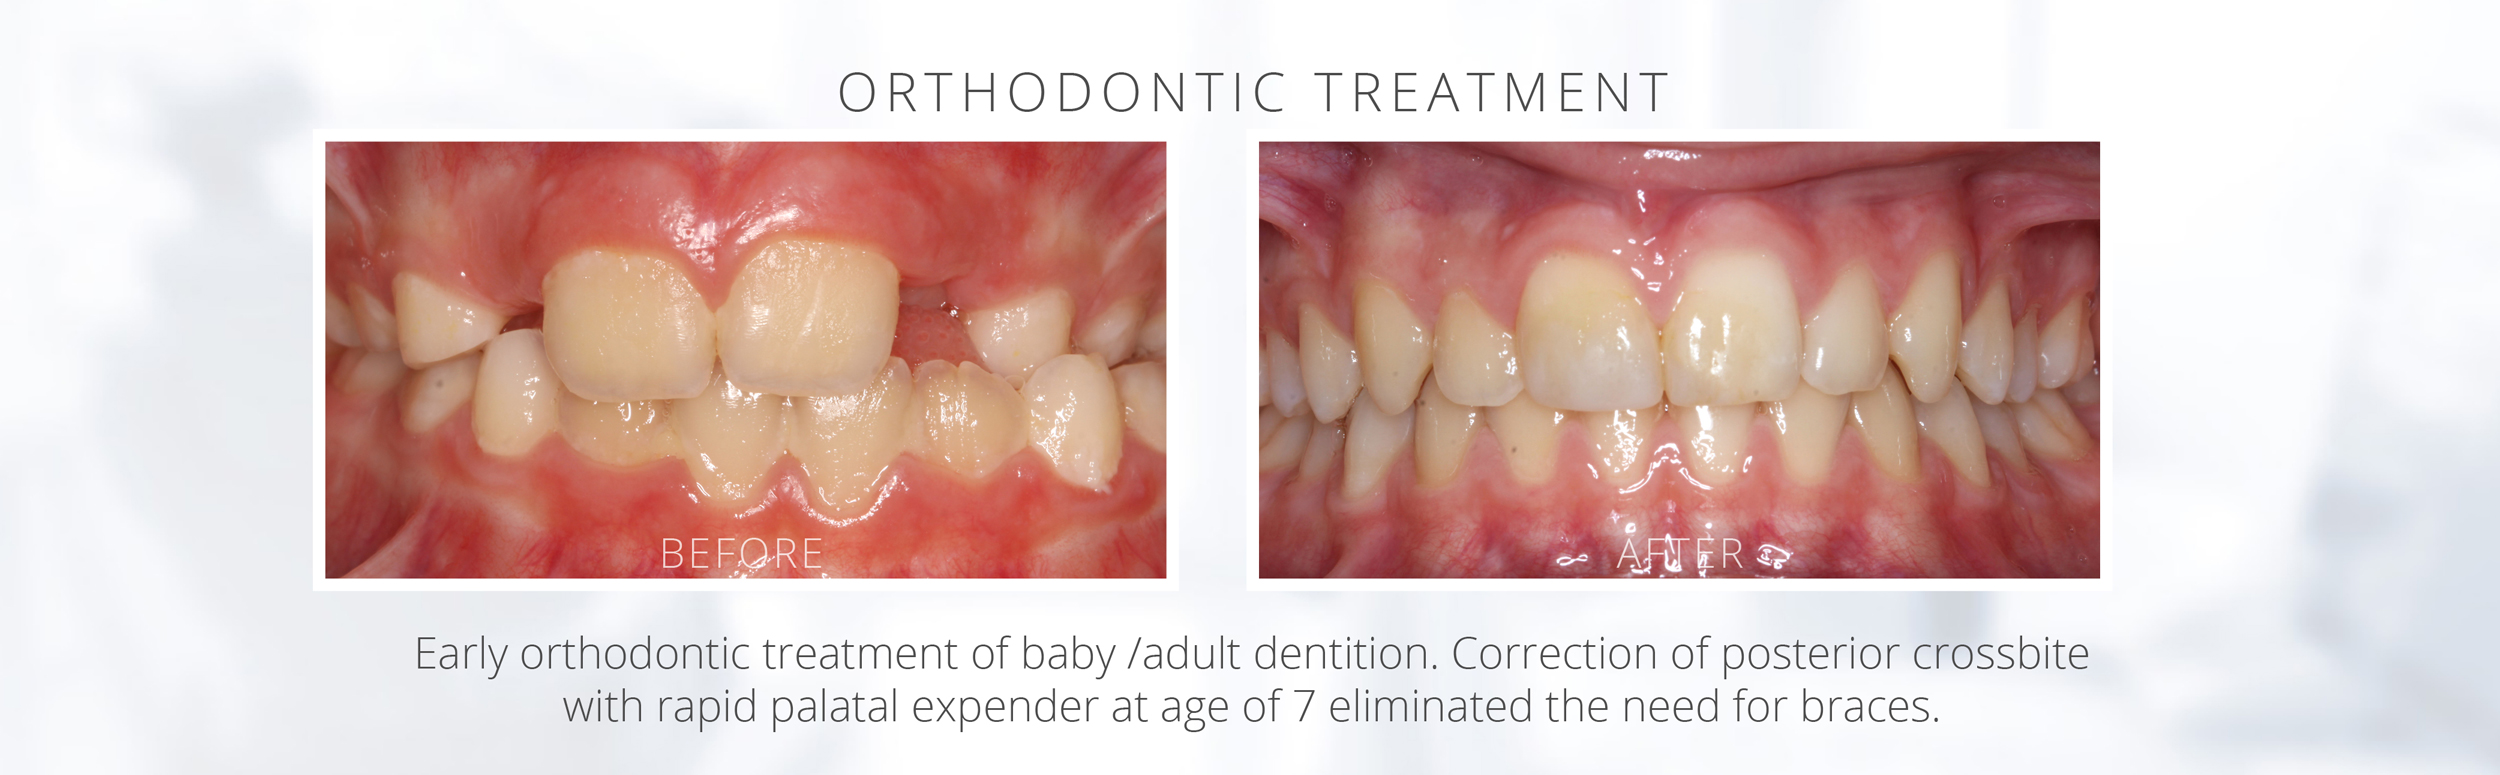 Early orthodontic treatment of baby /adult dentition. Correction of posterior crossbite with rapid palatal expender at age of 7 eliminated the need for braces.